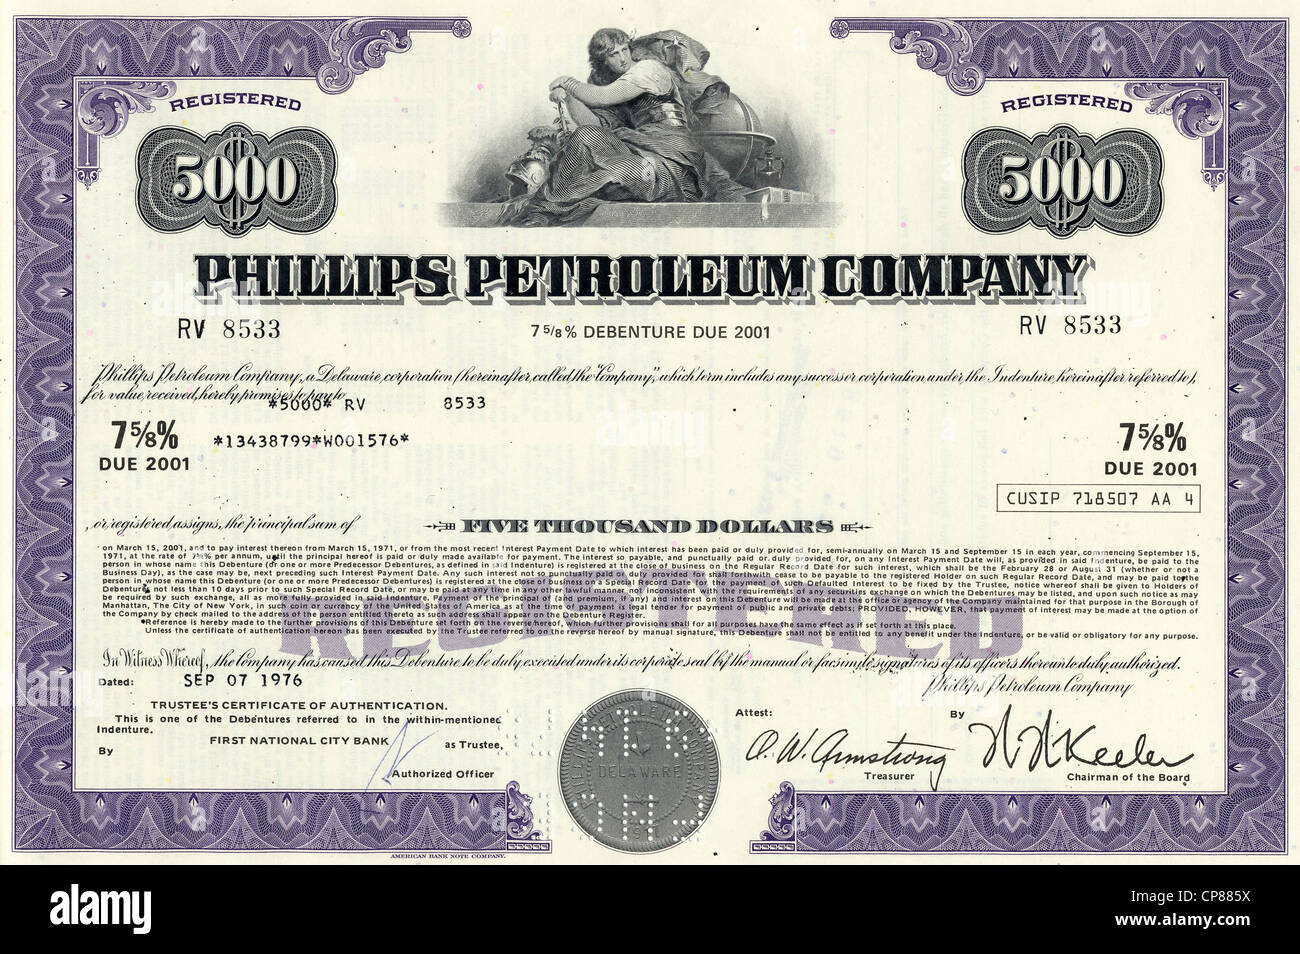 Historical Stock Certificate Of An Oil Gas And Energy Company Stock